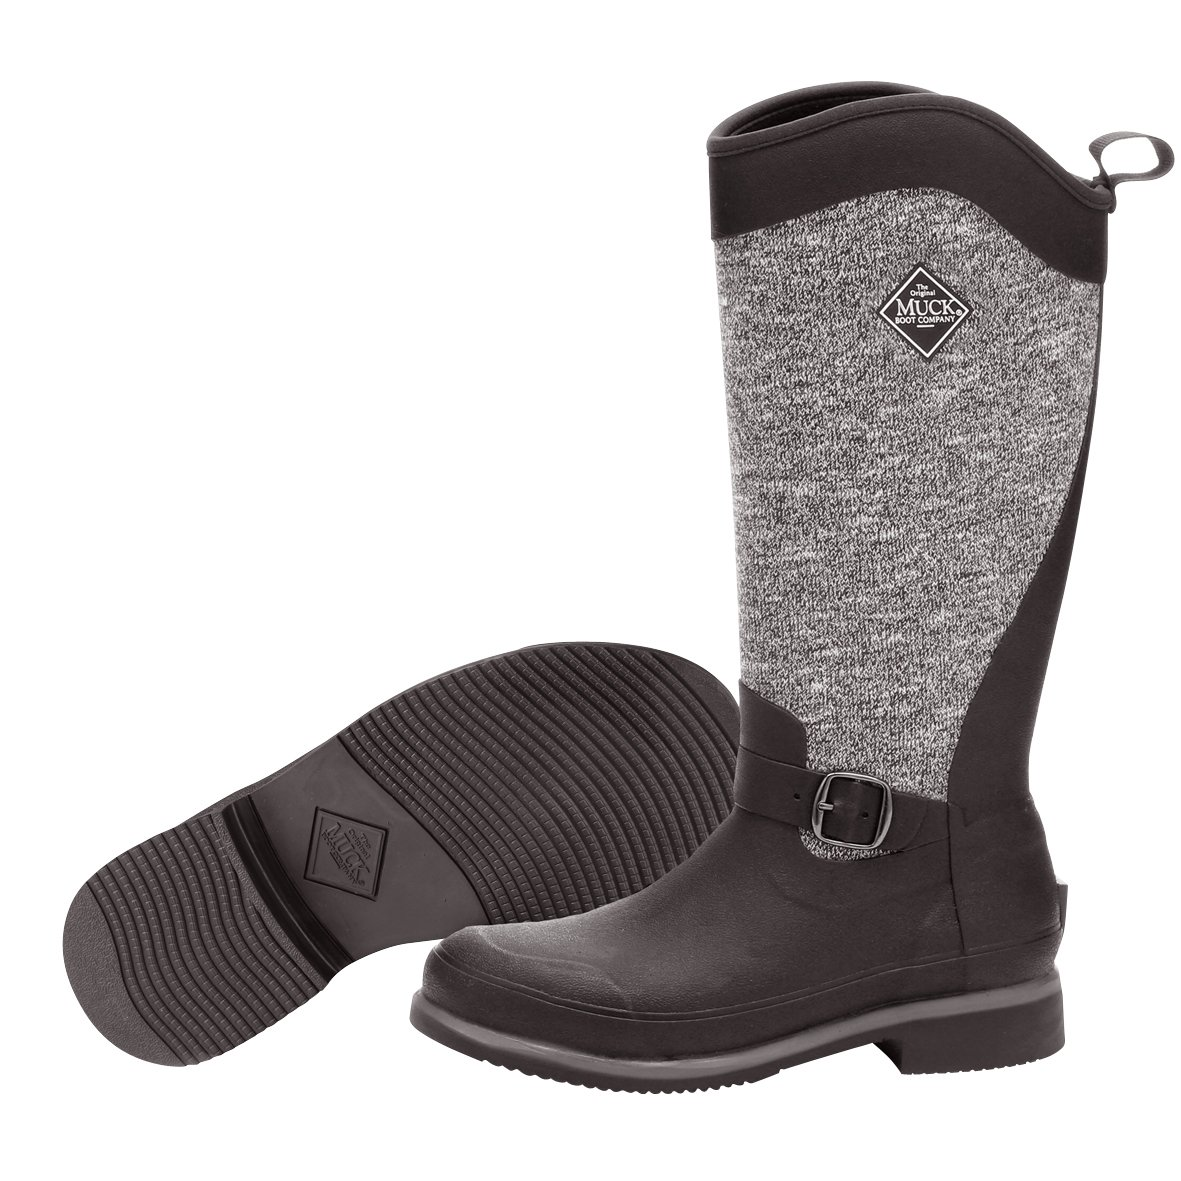 Muck Boot Women's Reign Supreme Snow B01J4JFTZ8 7 B(M) US|Black/Gray